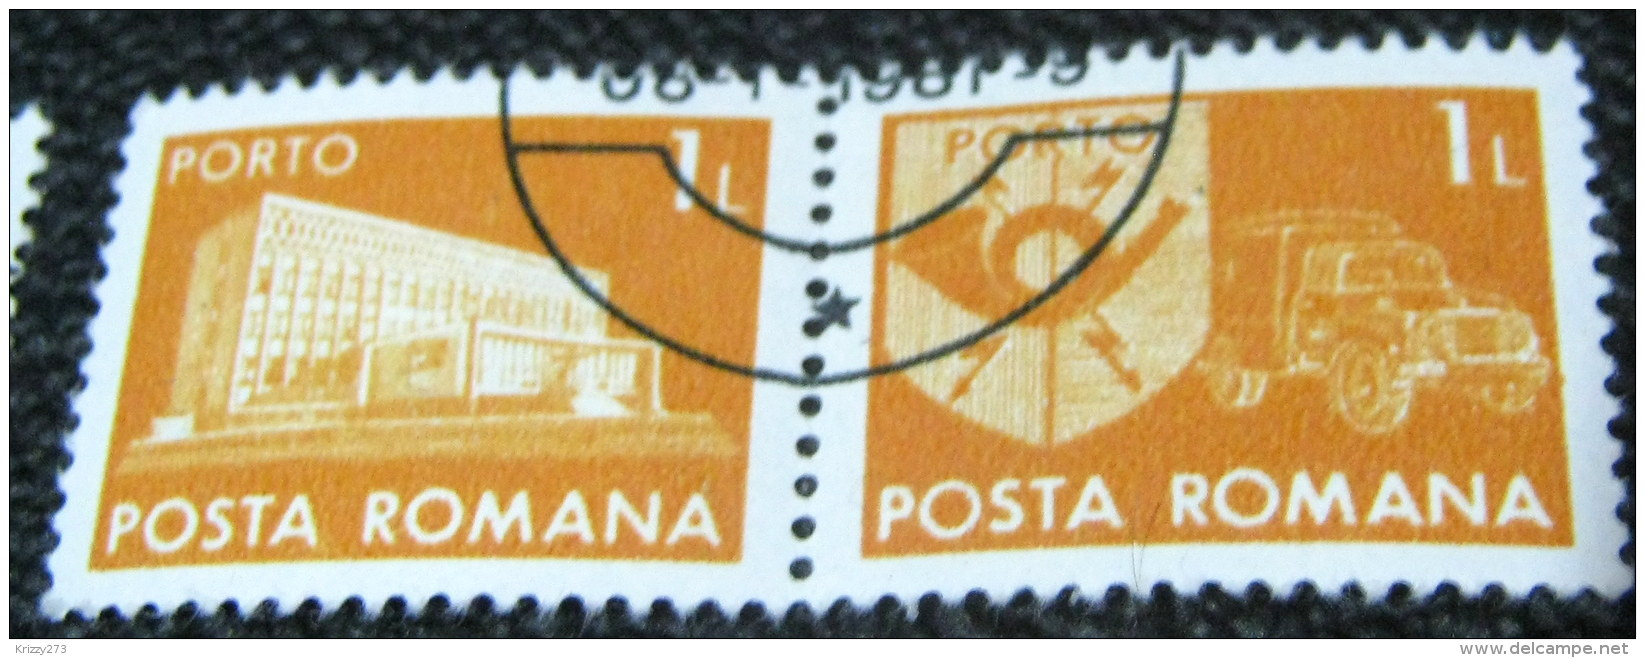 Romania 1974 National Post & Telecommunications Postage Due 1L - Used X2 - Port Dû (Taxe)